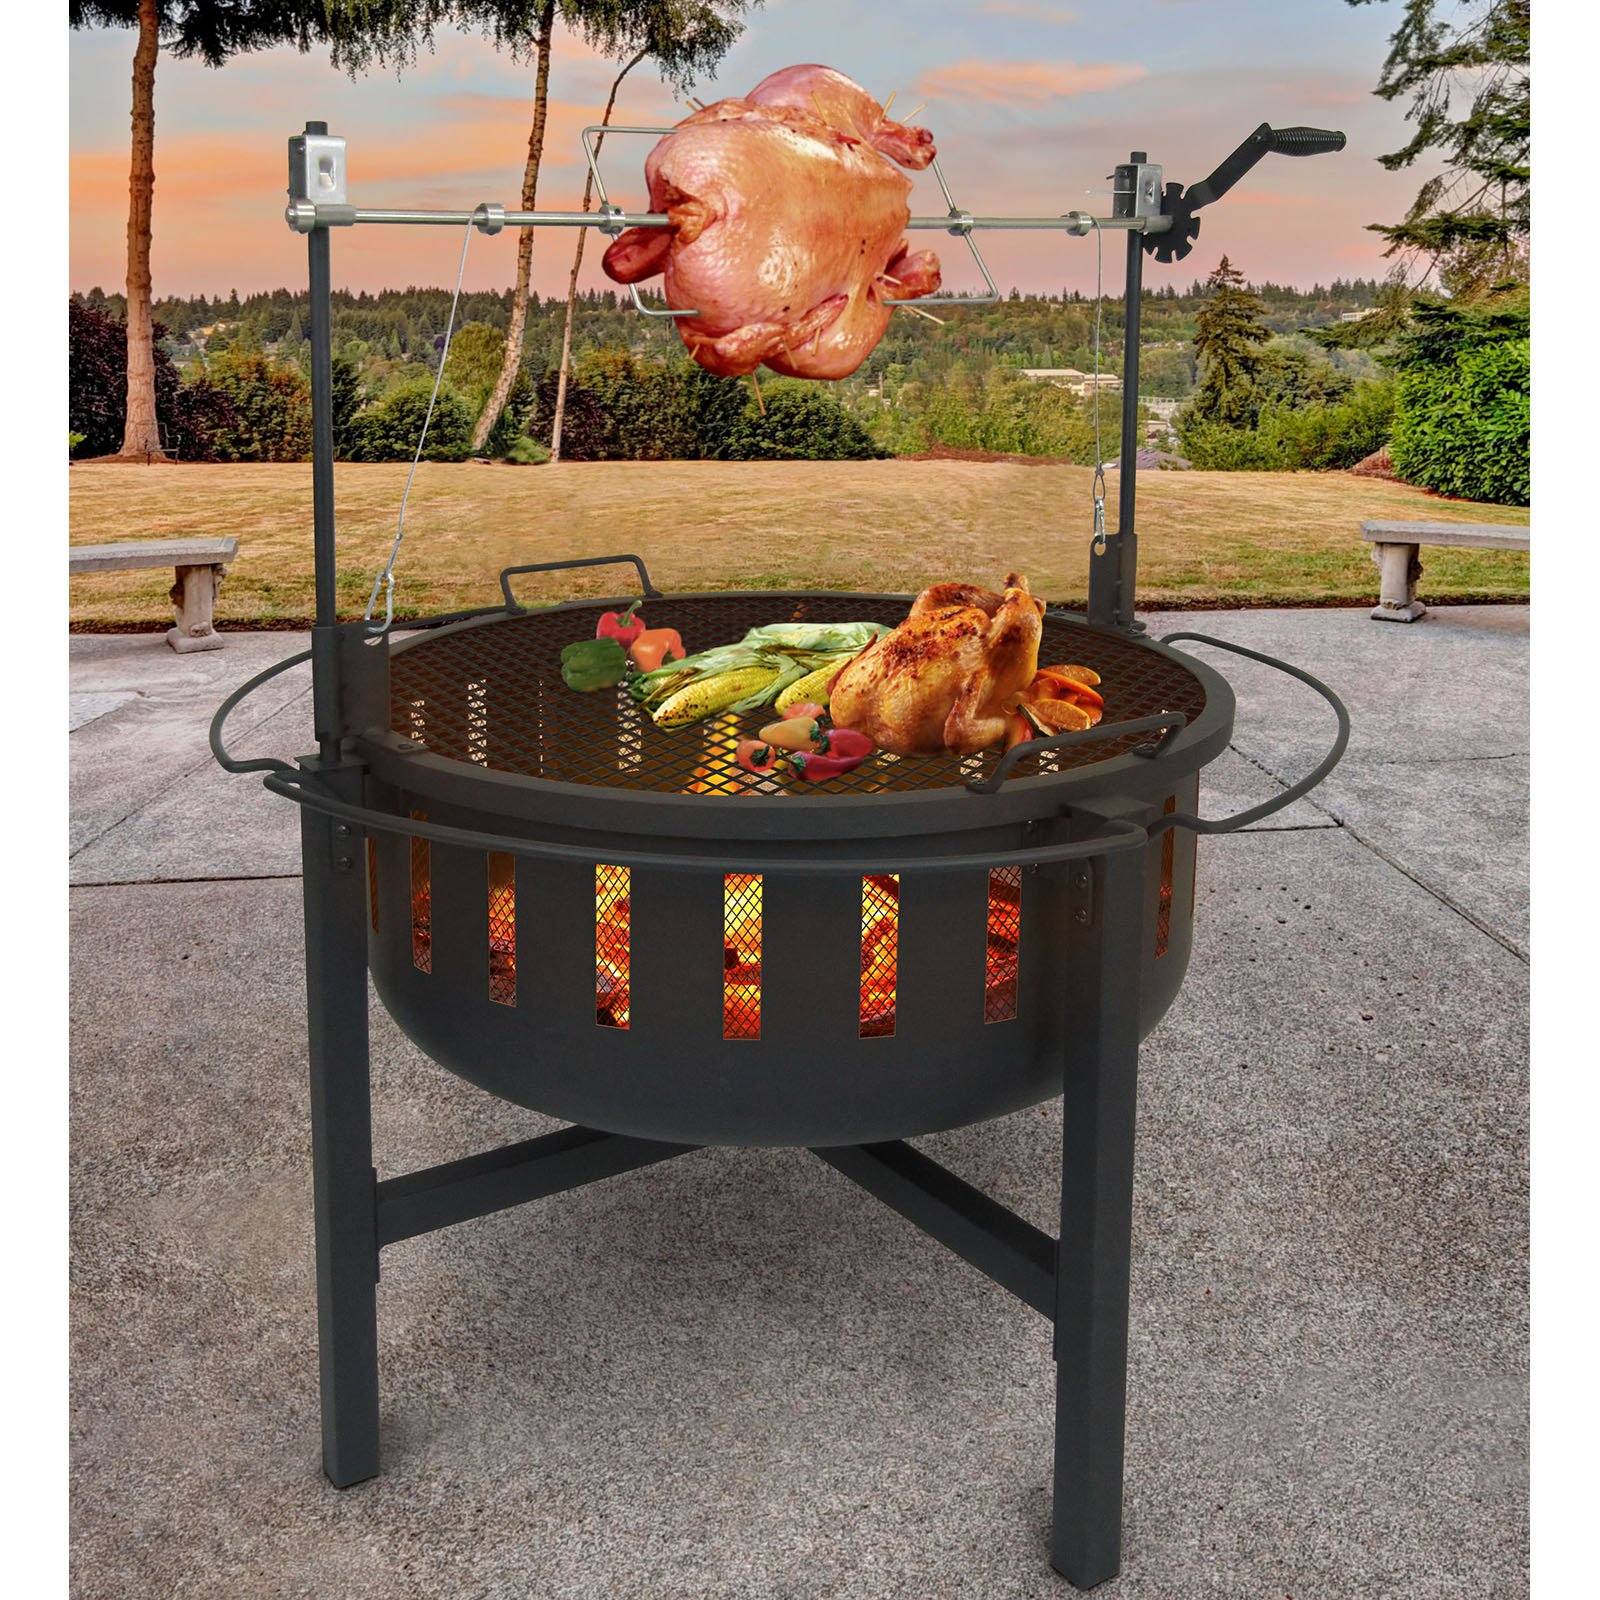 Landmann Fire Rock Firepit and Grill with Rotisserie by LANDMANN MCO LIMITED